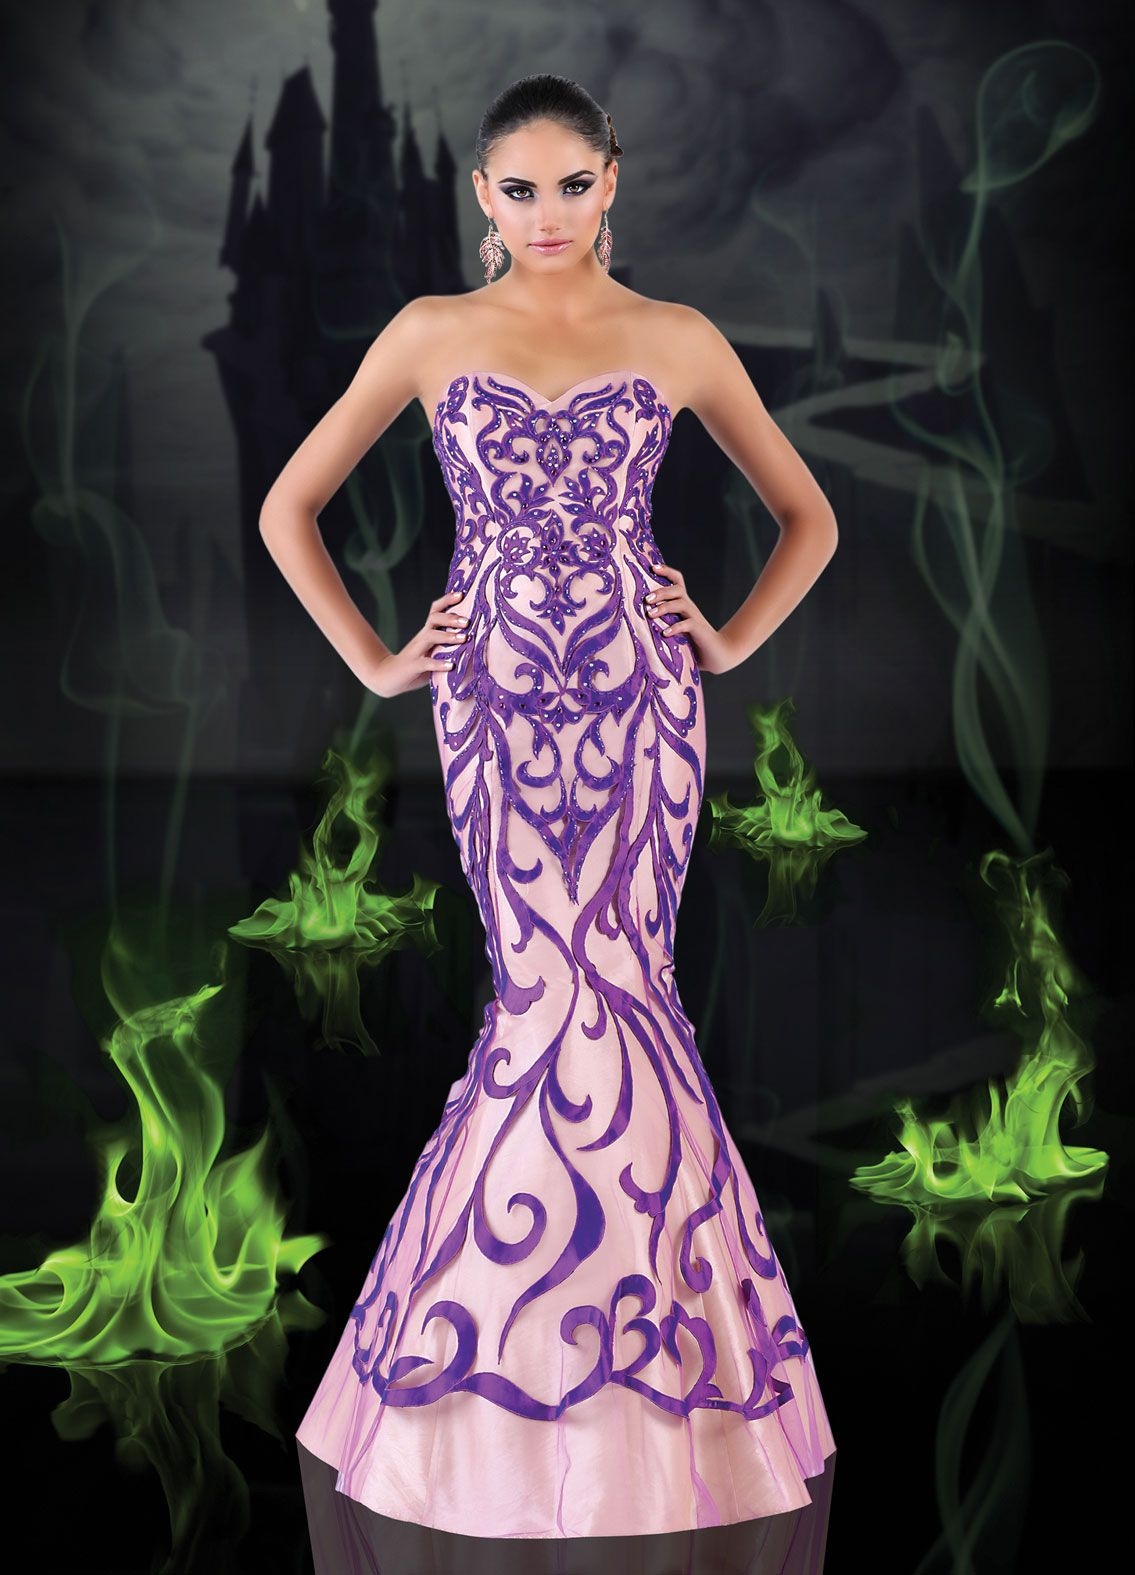 style from disneyenchanted prom choice my style